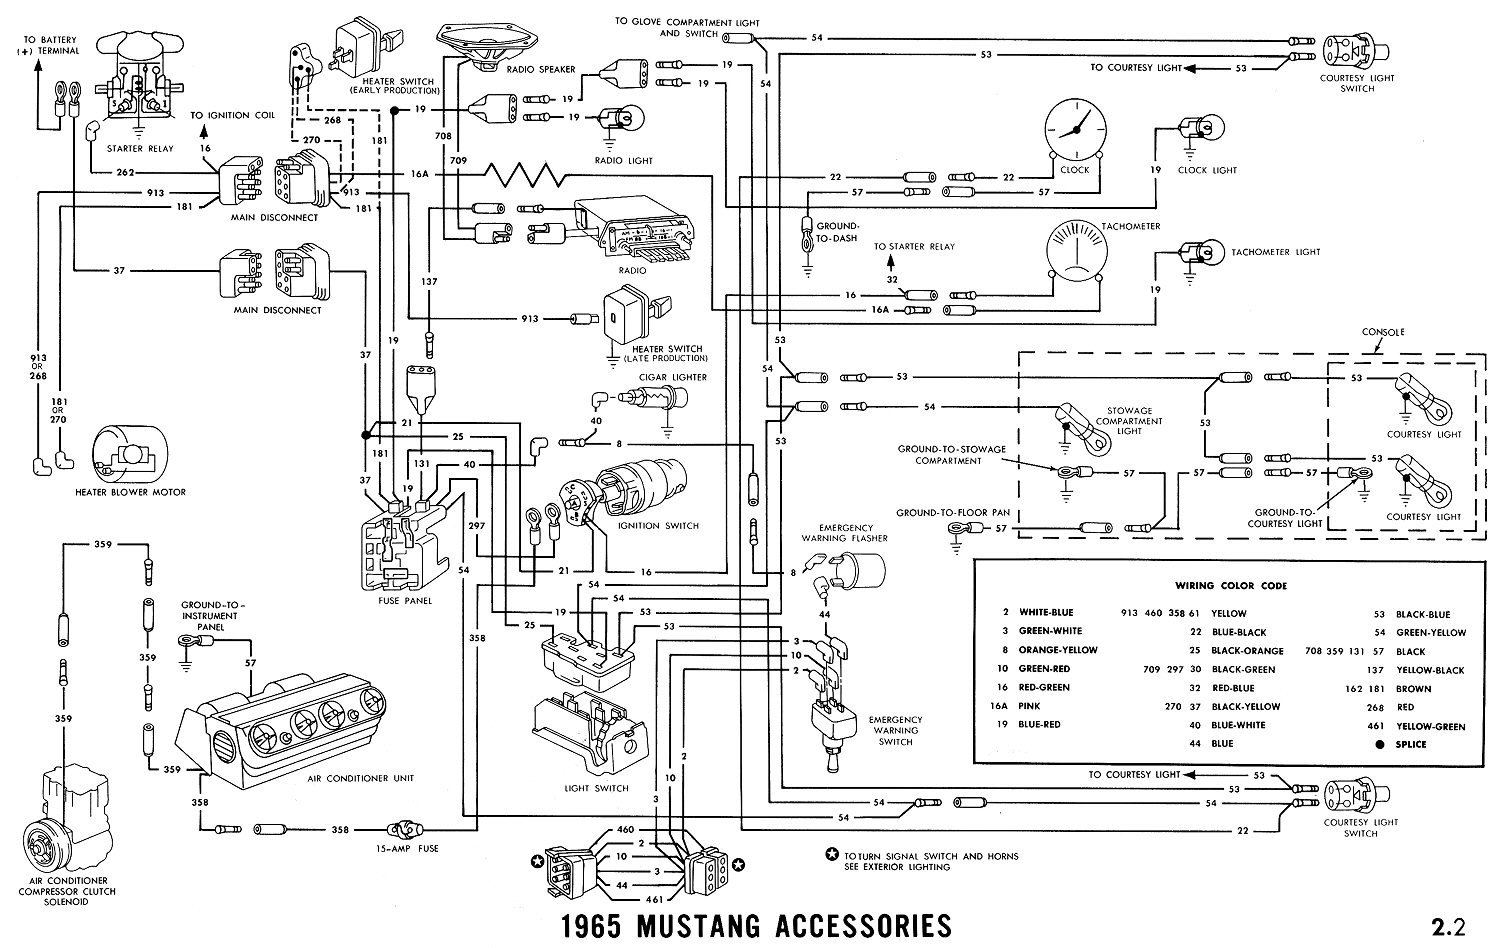 1965 mustang ignition switch wiring diagram moreover 1967 mustang